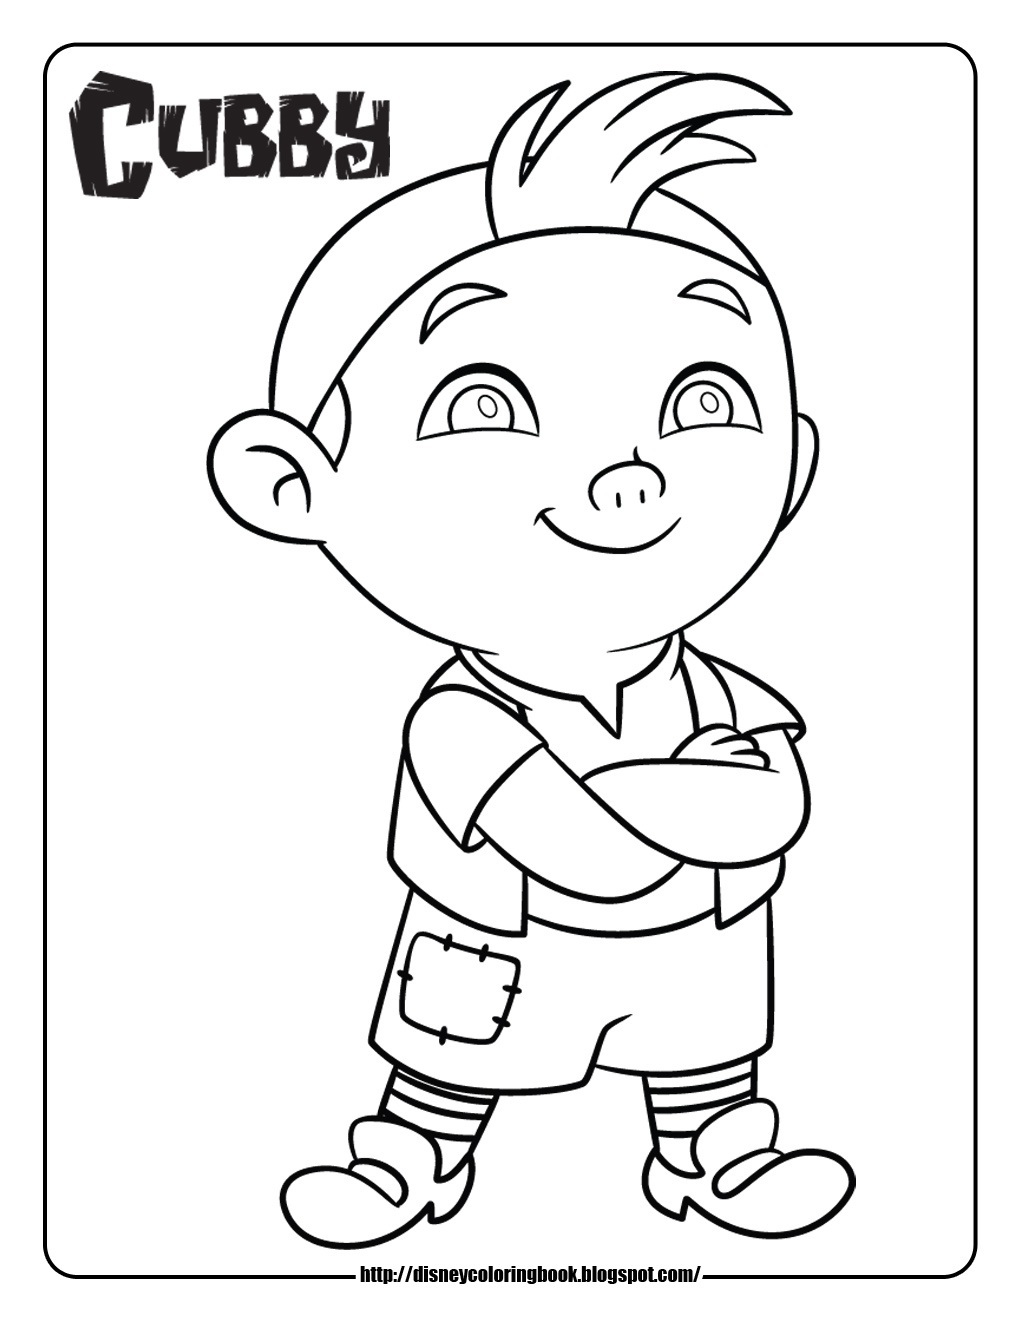 1020x1320 Printable Jake And The Neverland Pirates Coloring Pages